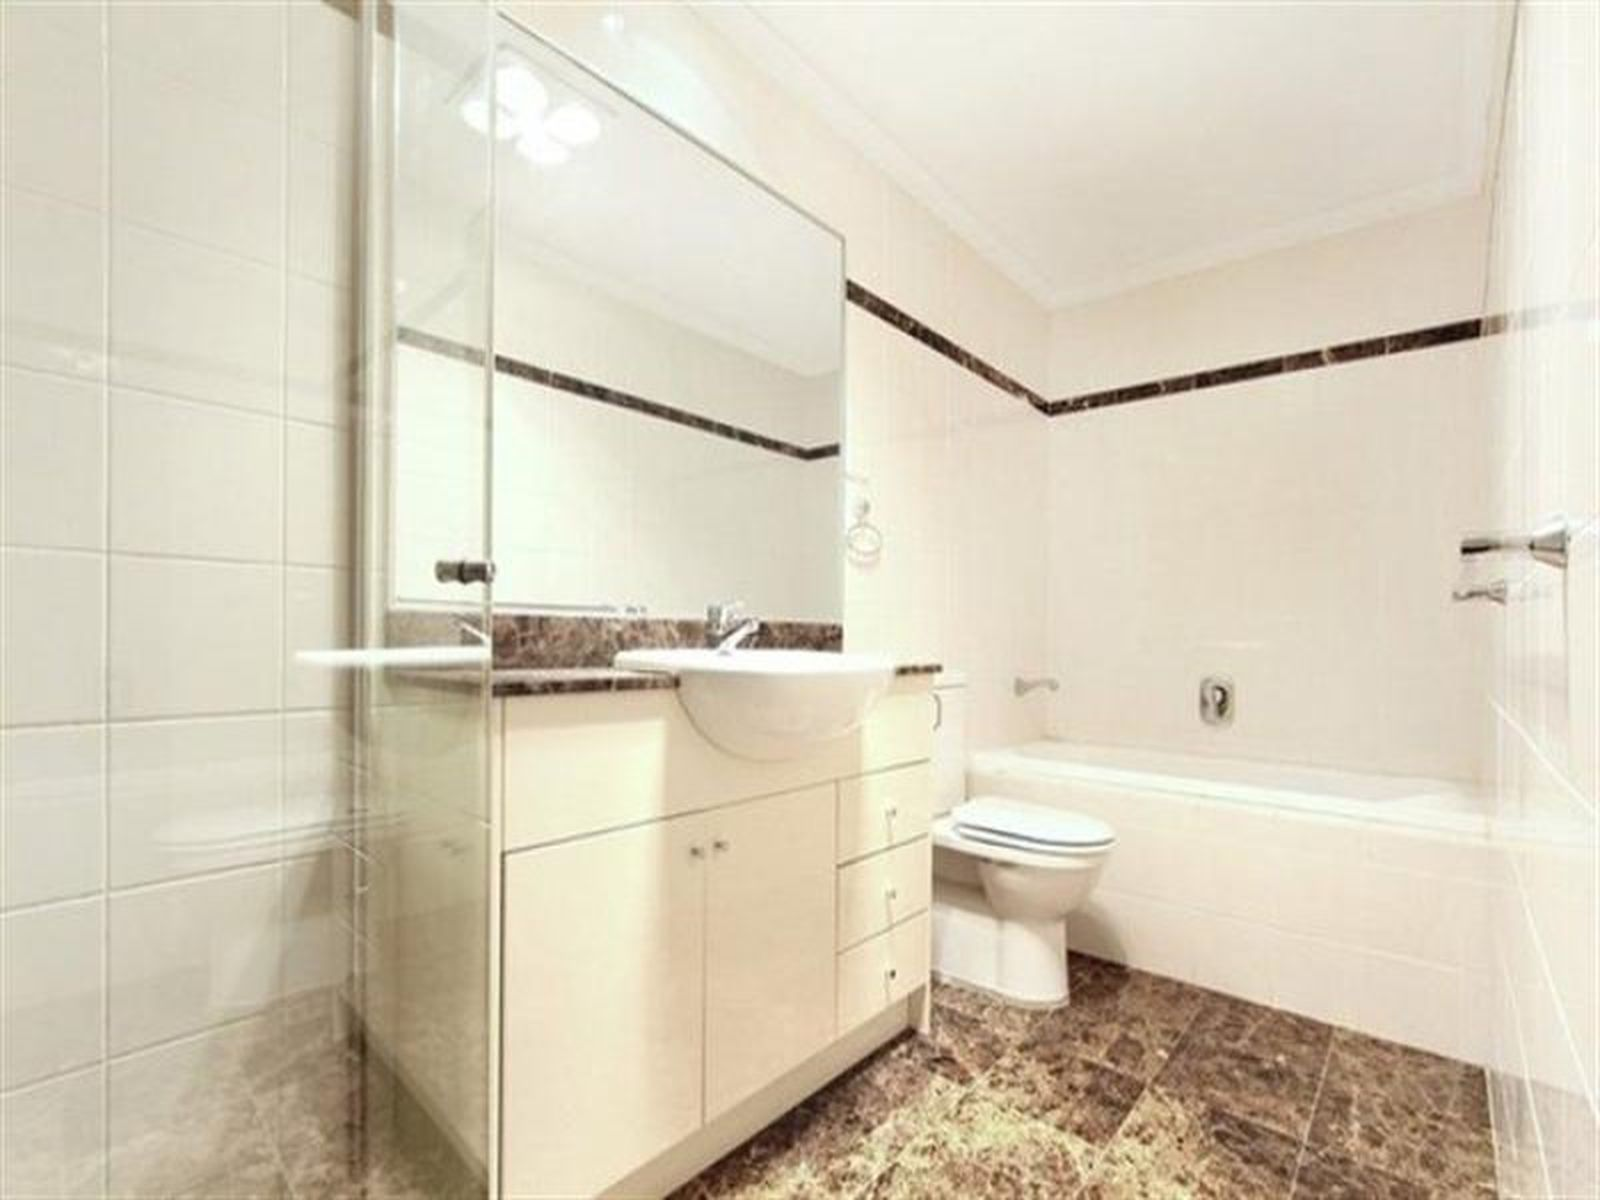 10 / 9-11 Bode Avenue, North Wollongong